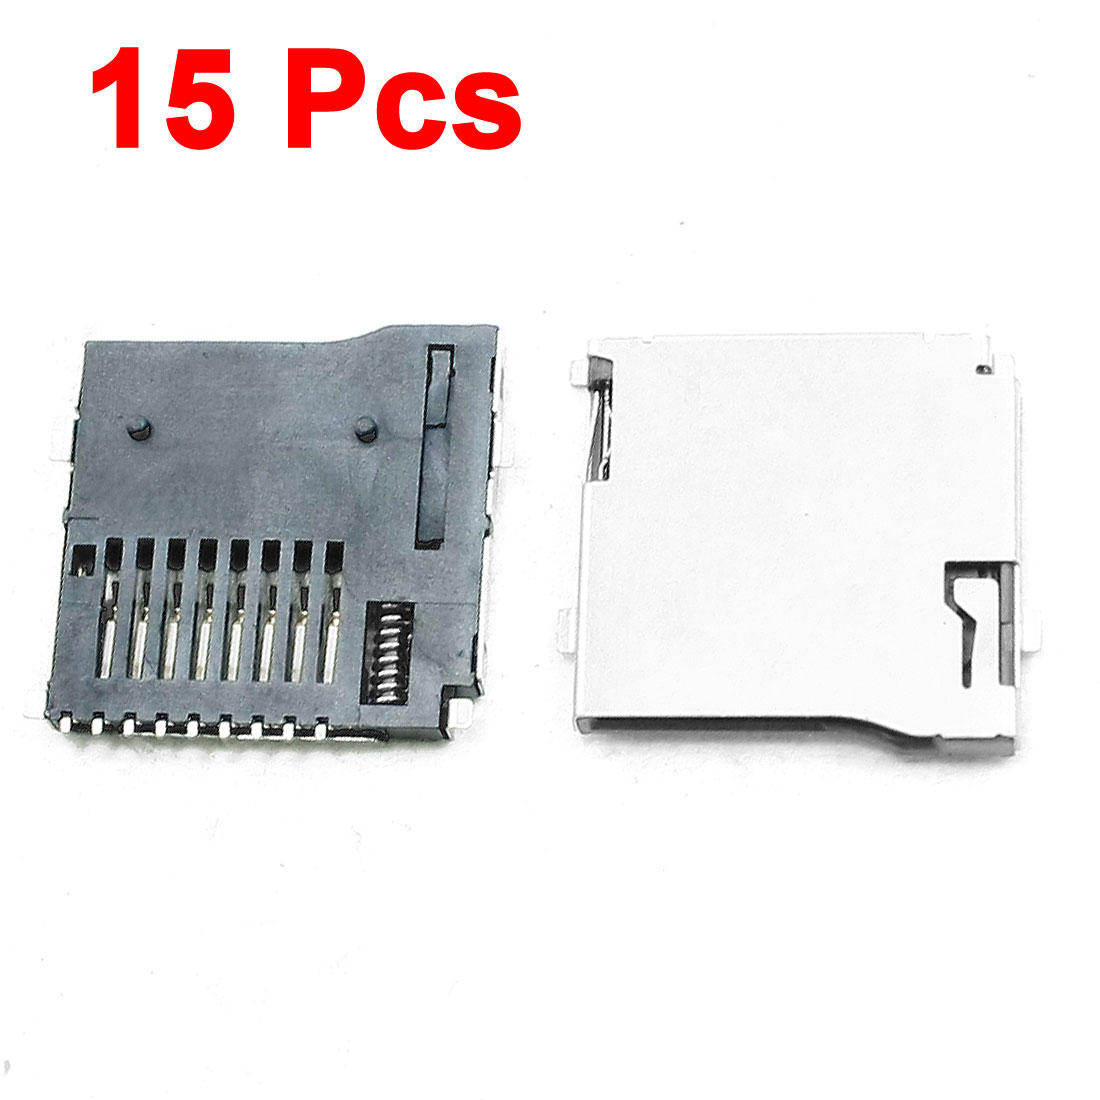 15 Pcs Automatic Push/Push Type TF Micro SD Card Sockets Slots